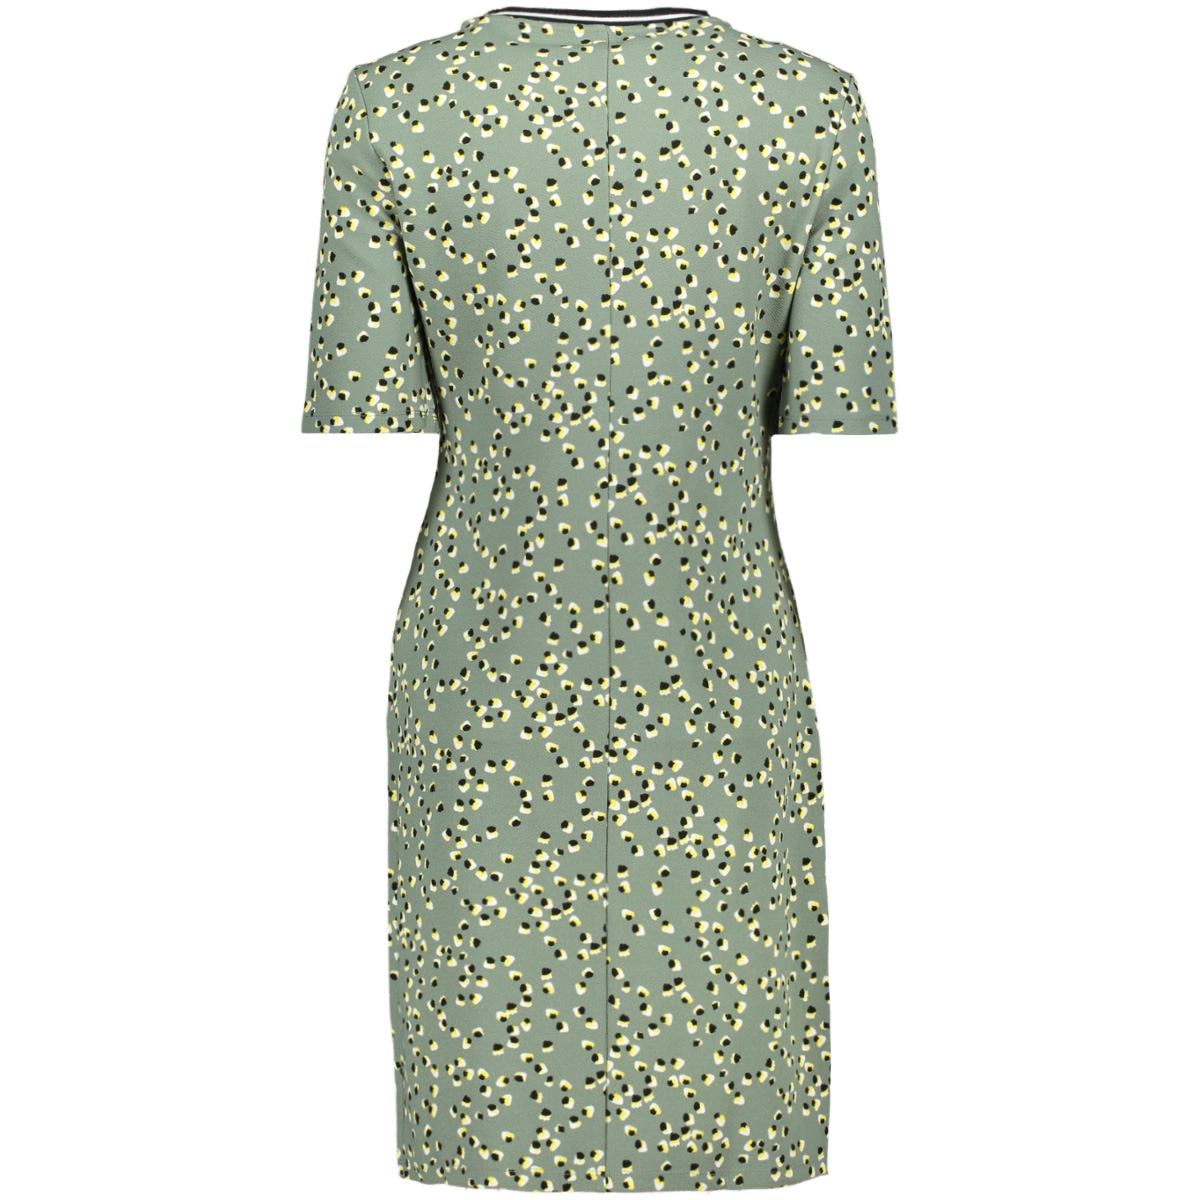 vmkim gabrielle dress  exp 10220948 vero moda jurk laurel wreath/kim